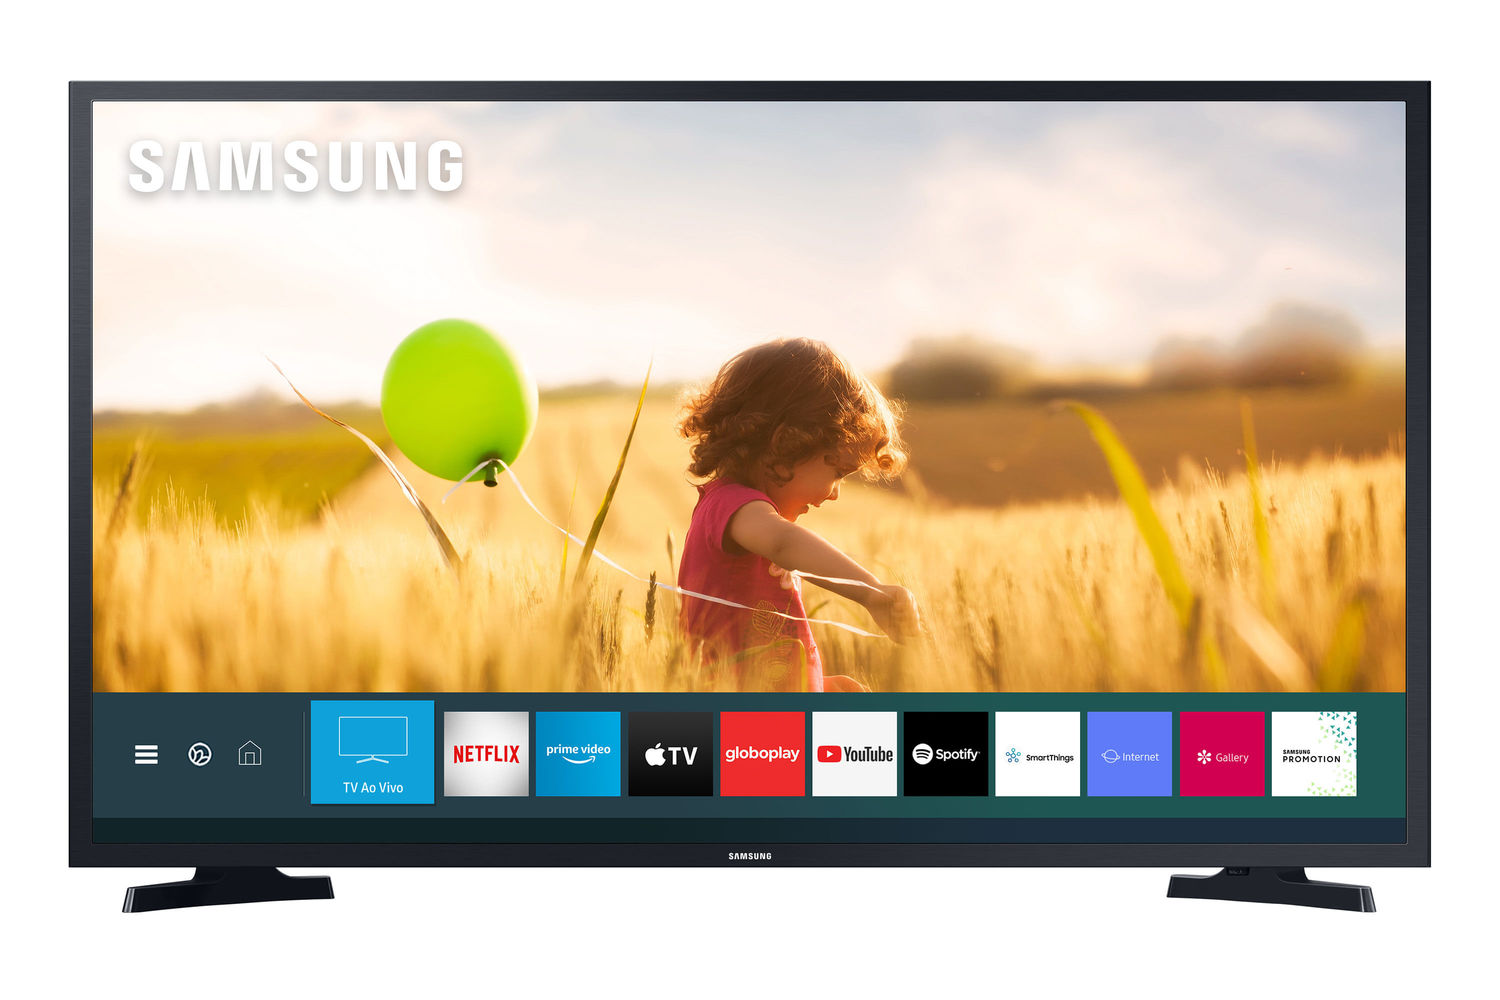 Samsung Smart TV Tizen FHD T5300, 2020, HDR